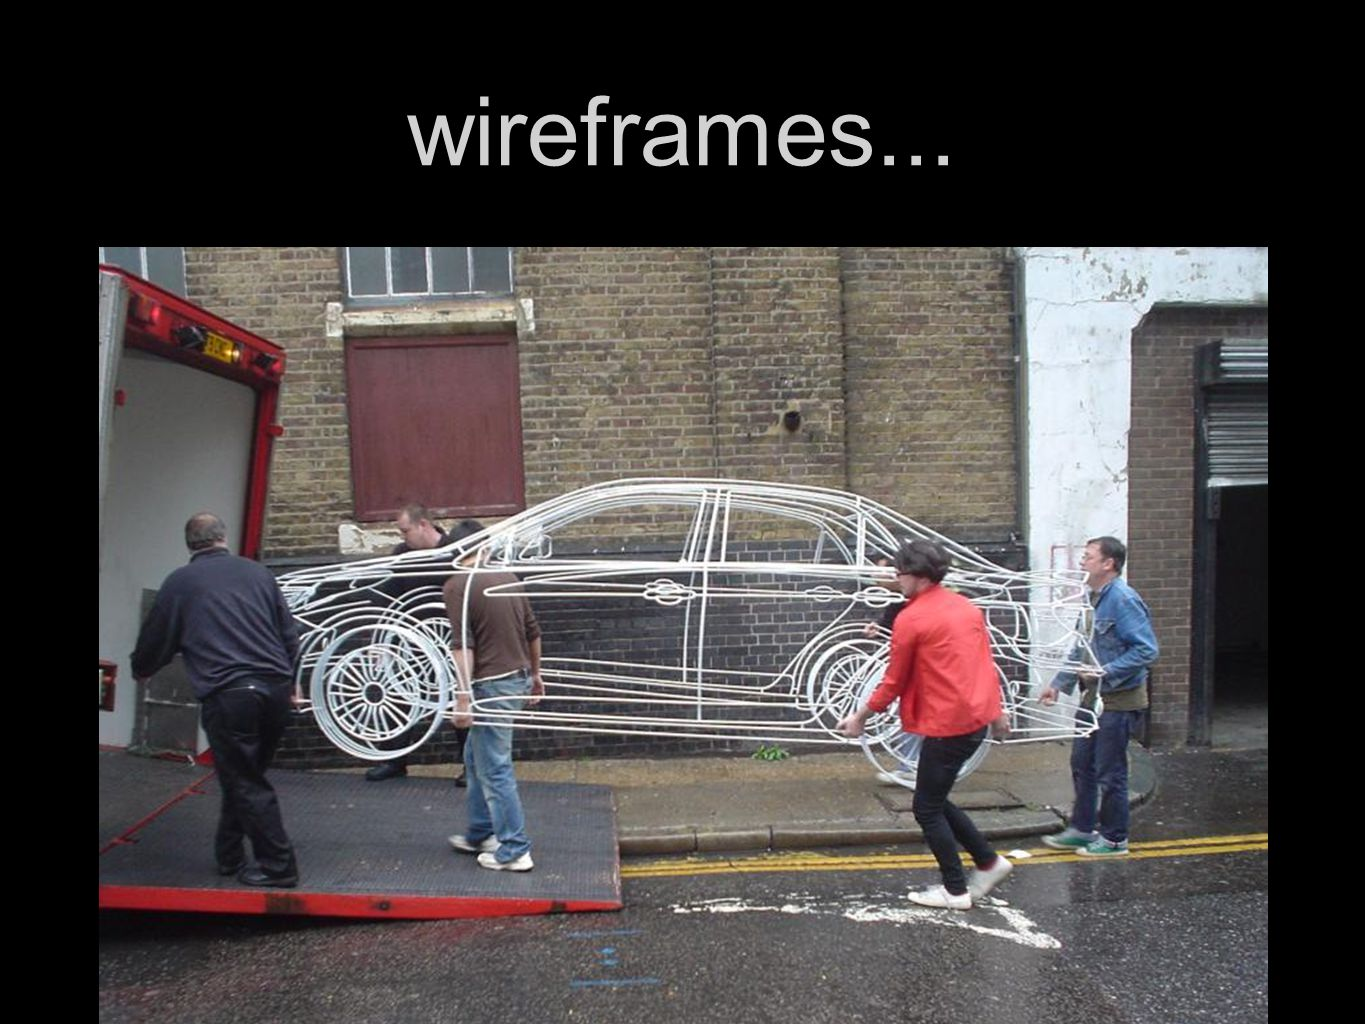 wireframes...